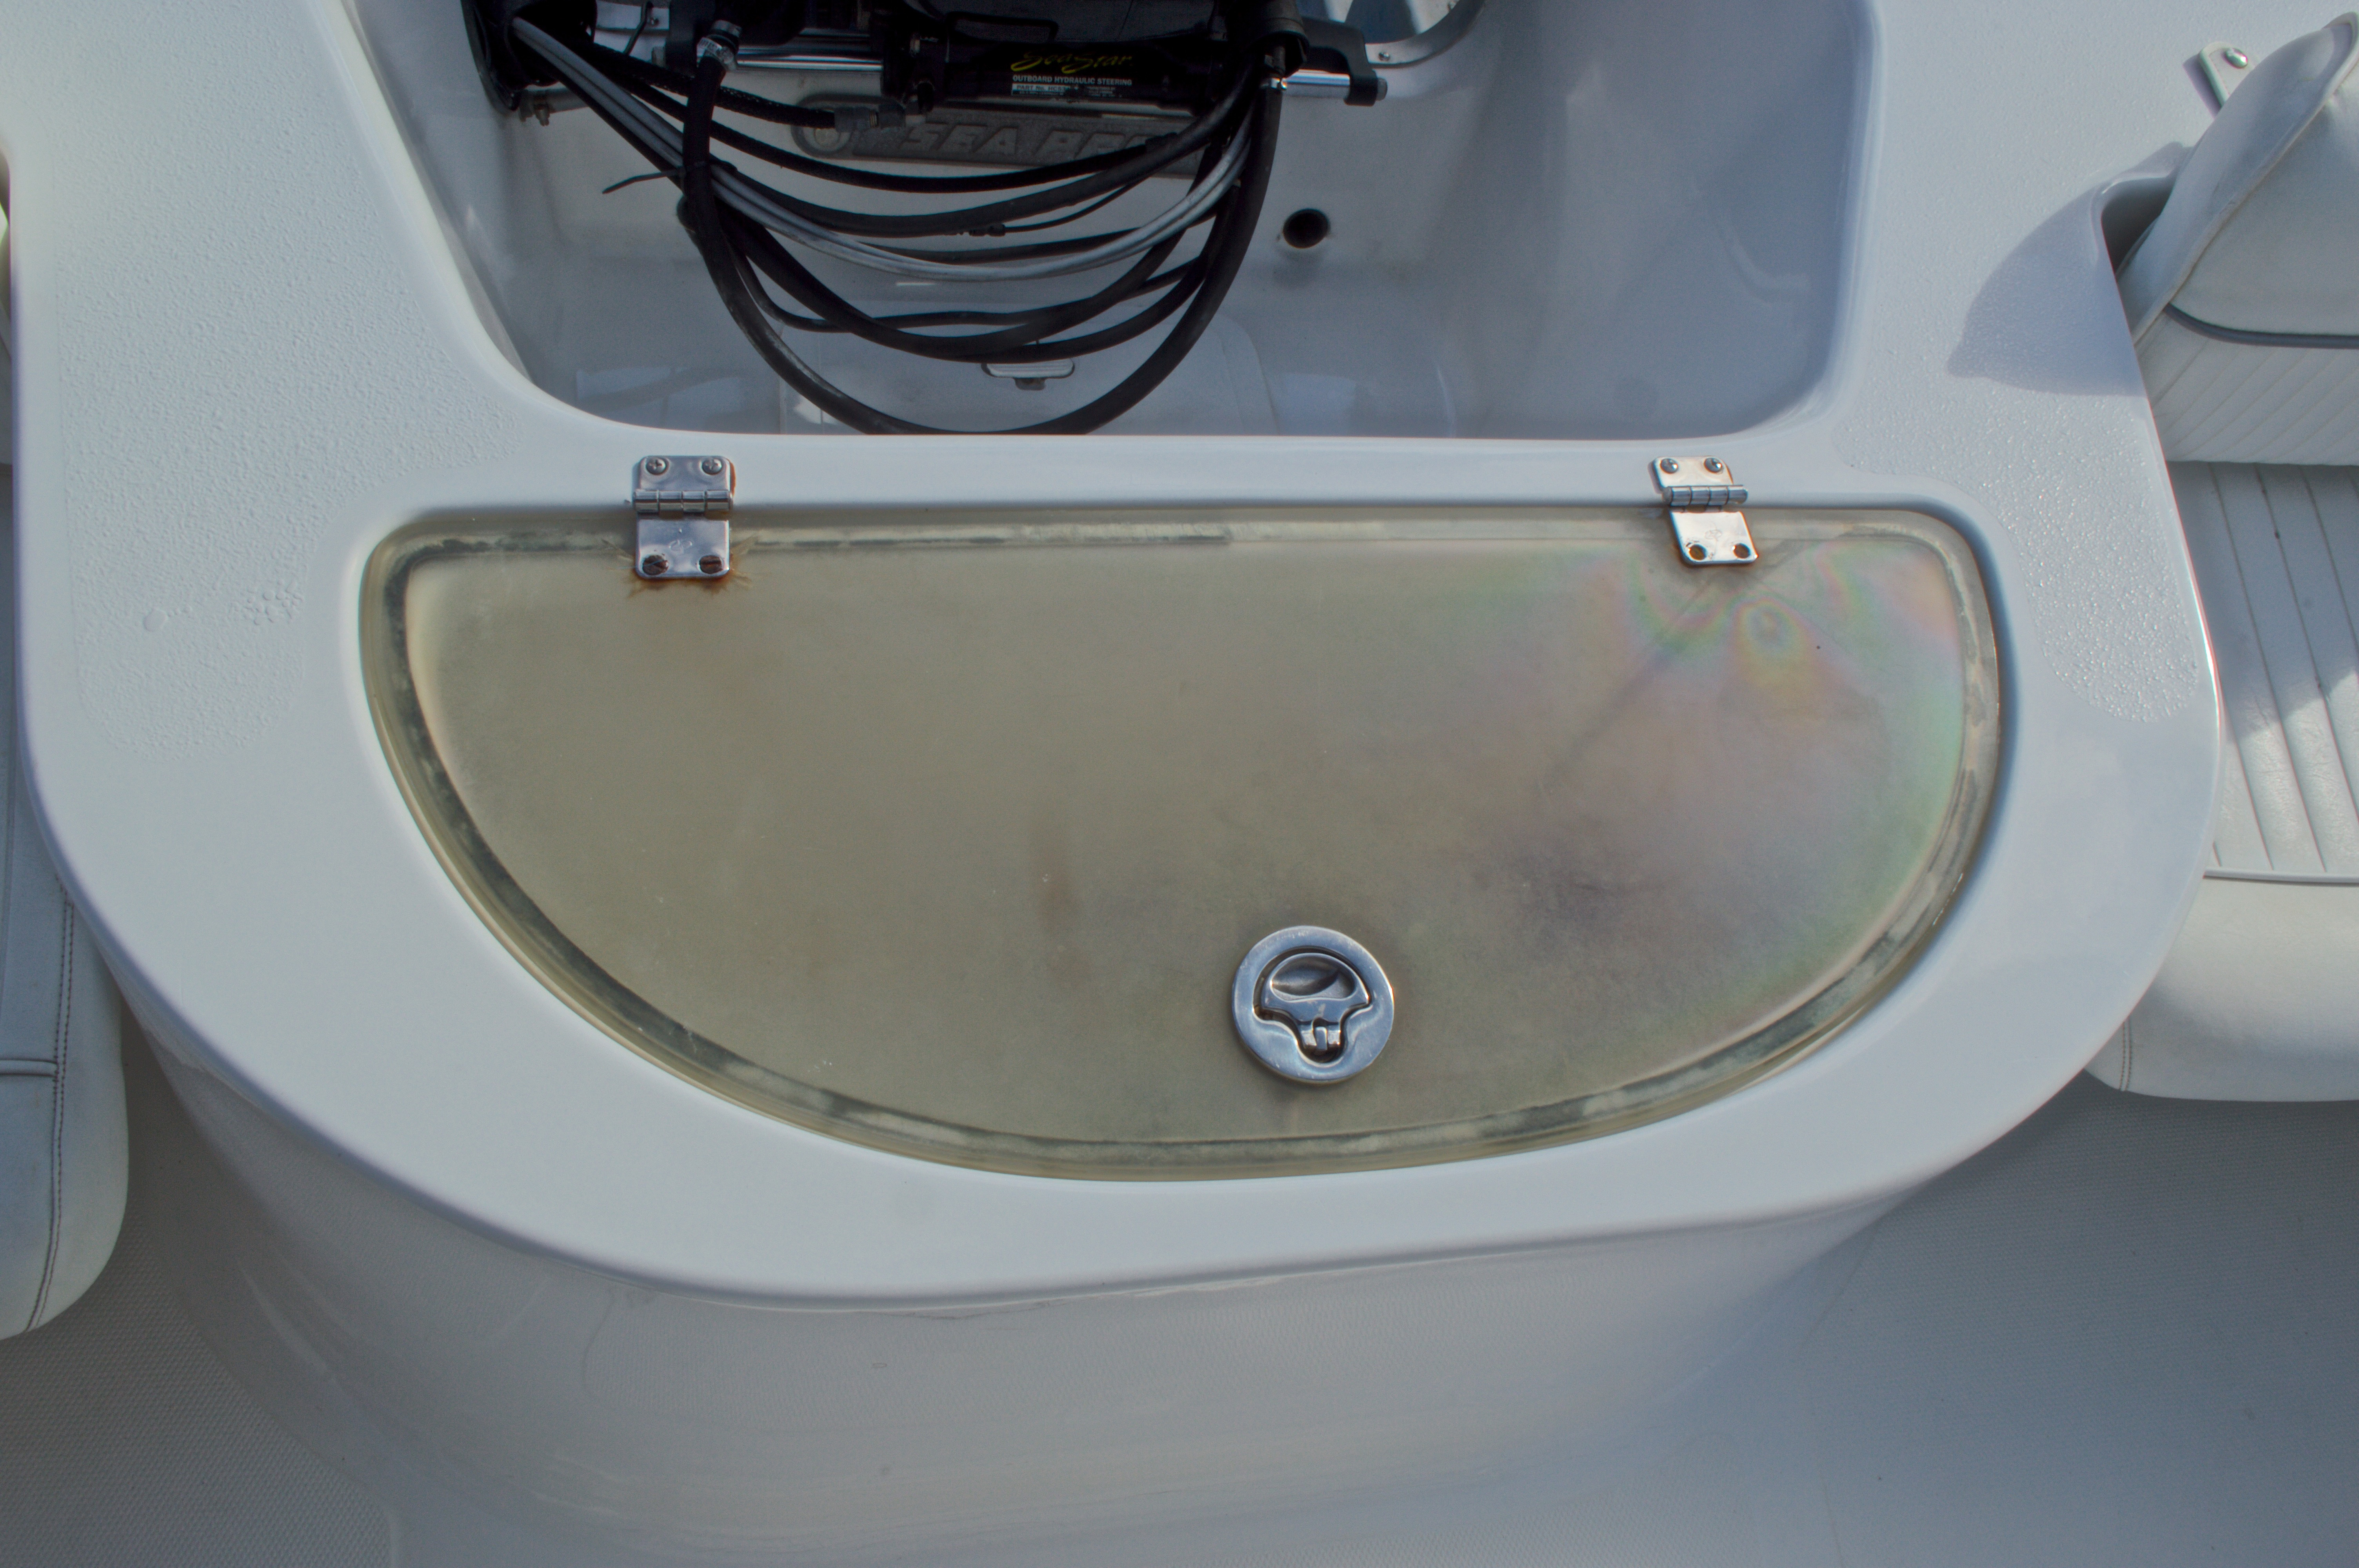 Thumbnail 15 for Used 2007 Sea Pro 186 Center Console boat for sale in West Palm Beach, FL